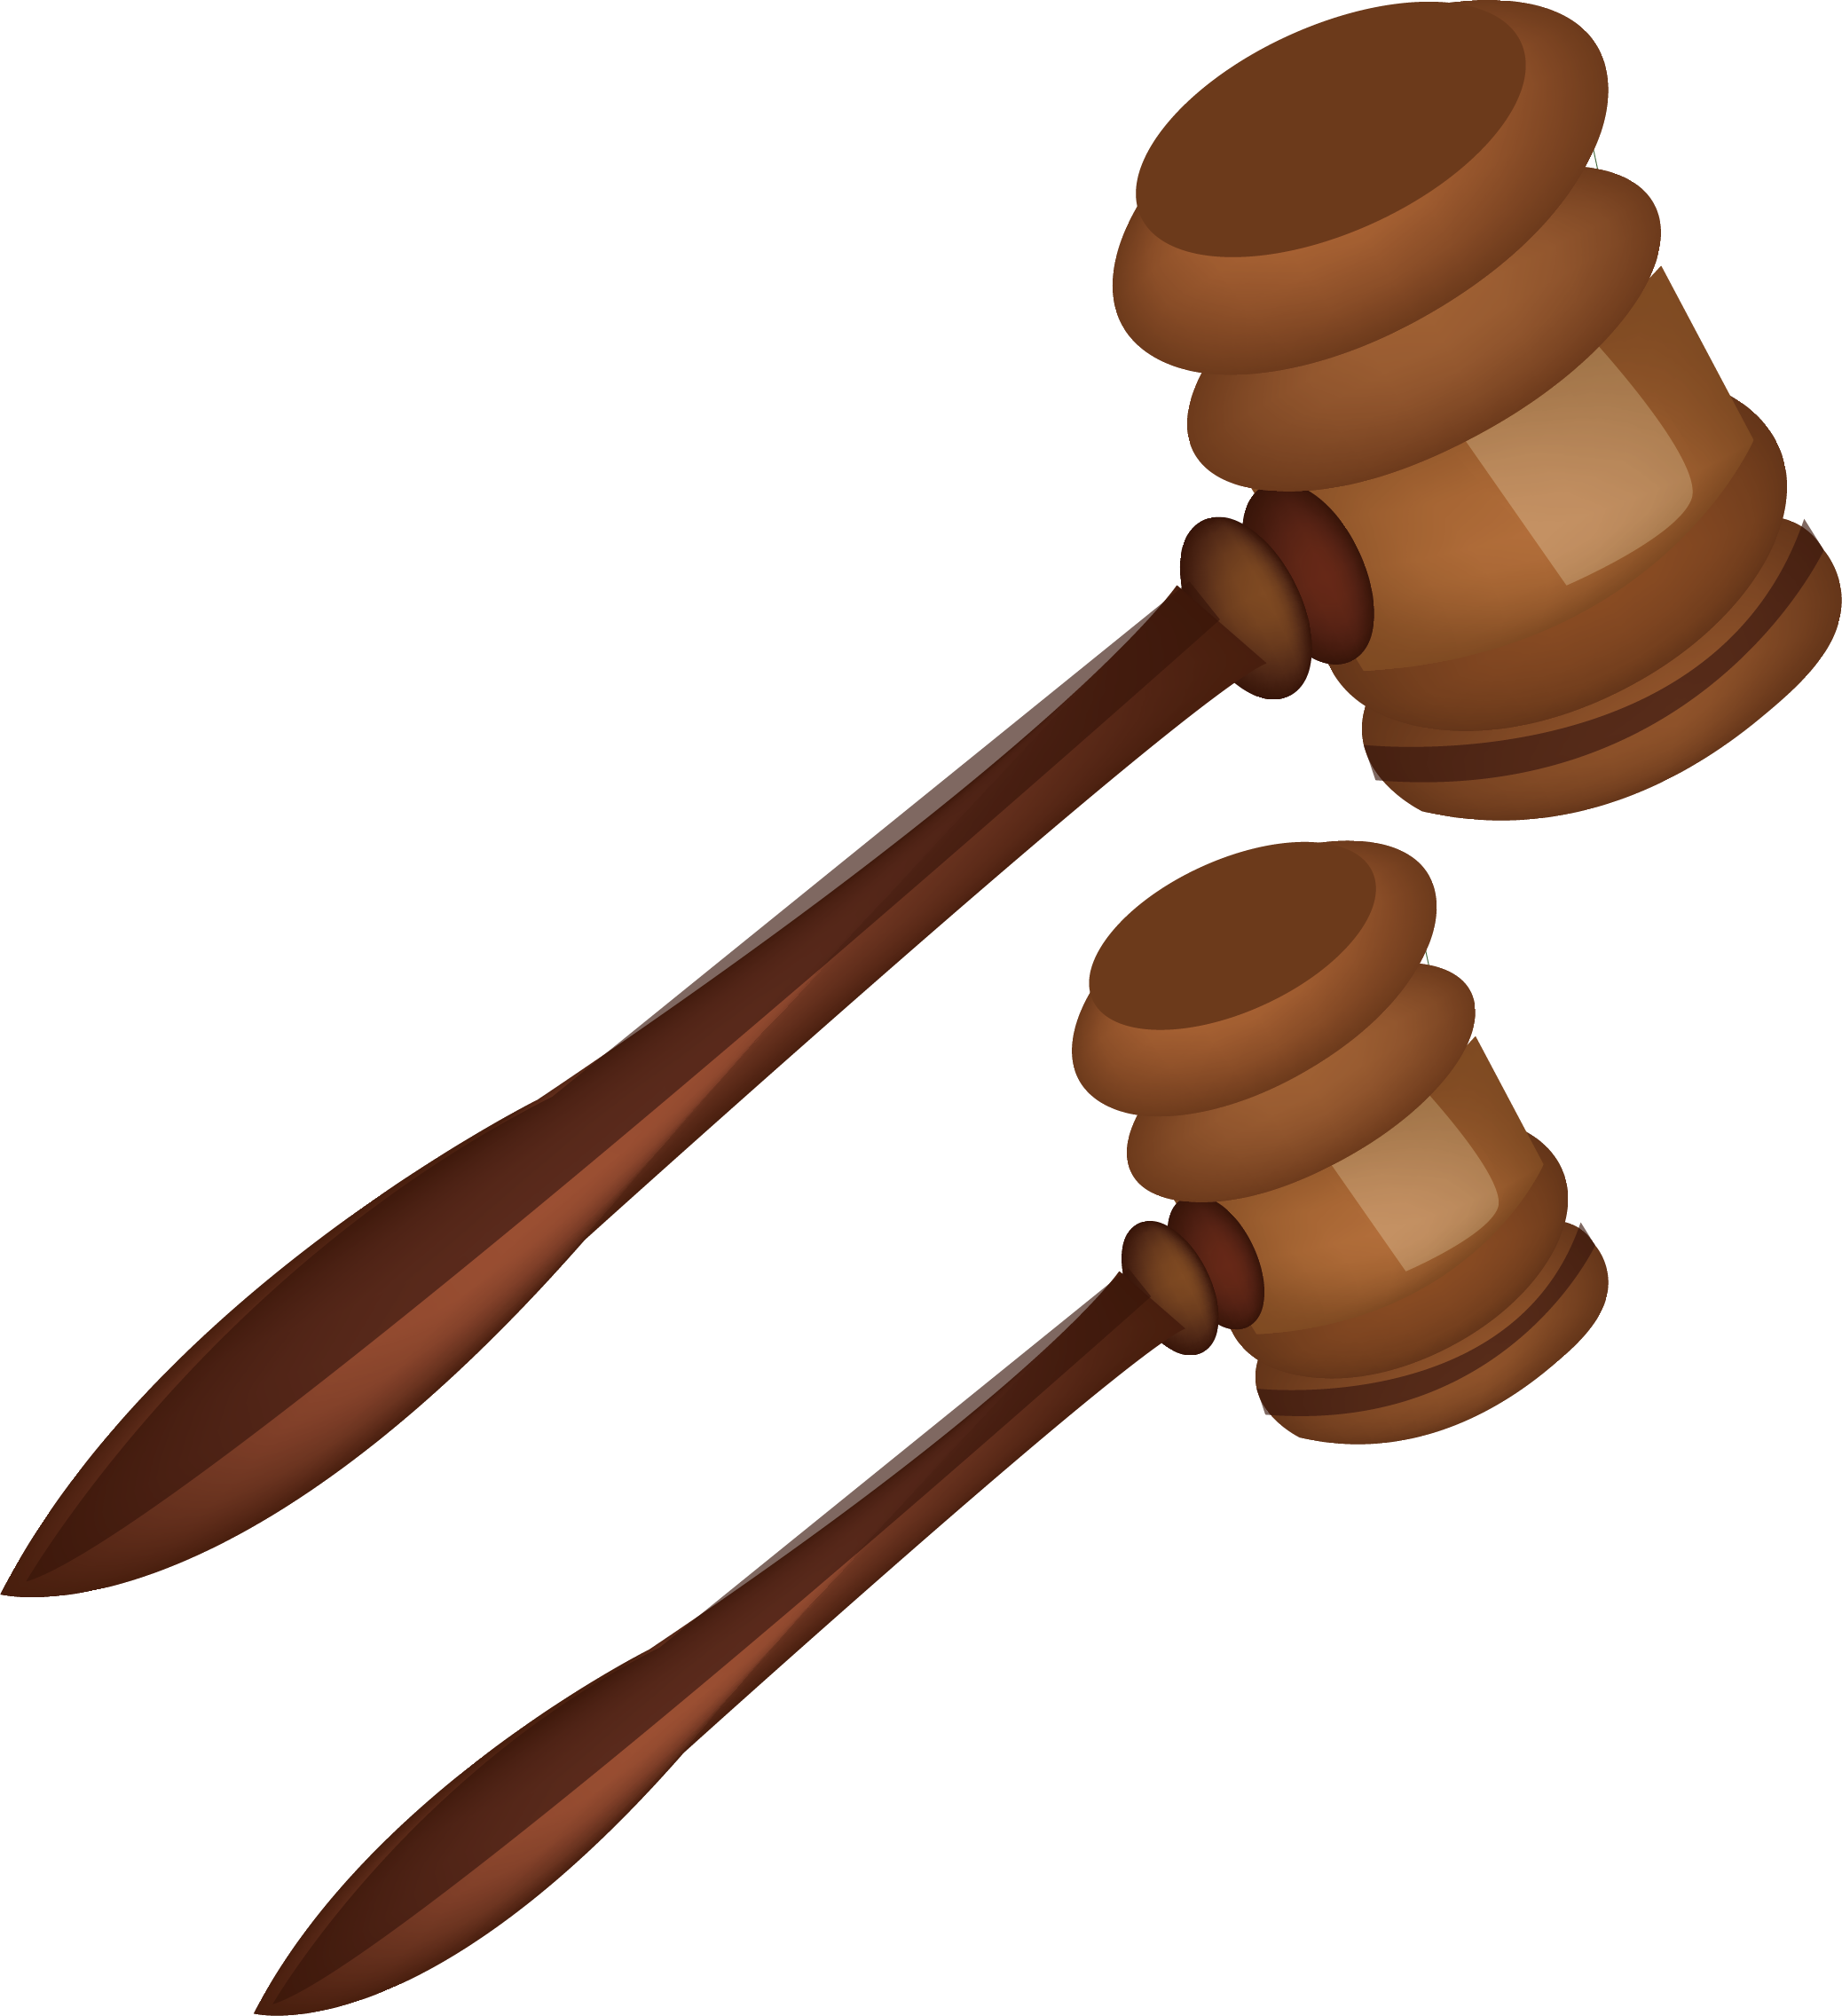 Courthouse clipart courtroom. Court hammer drawing at